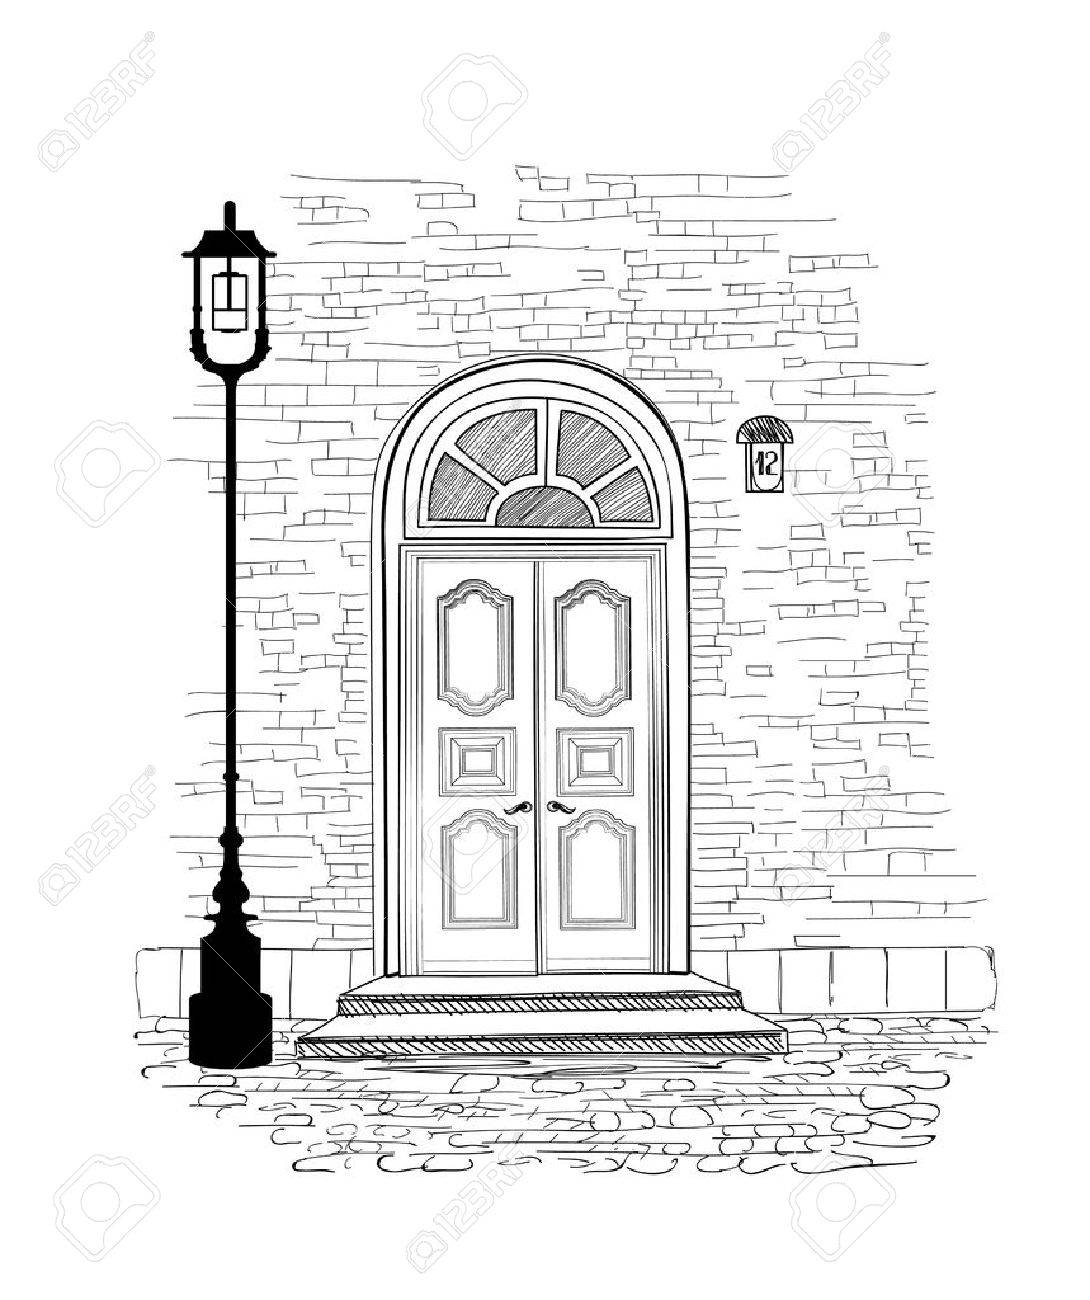 Old Doors In Vintage Style Over White Background House Entrance Hand Drawing Illustration Doodle